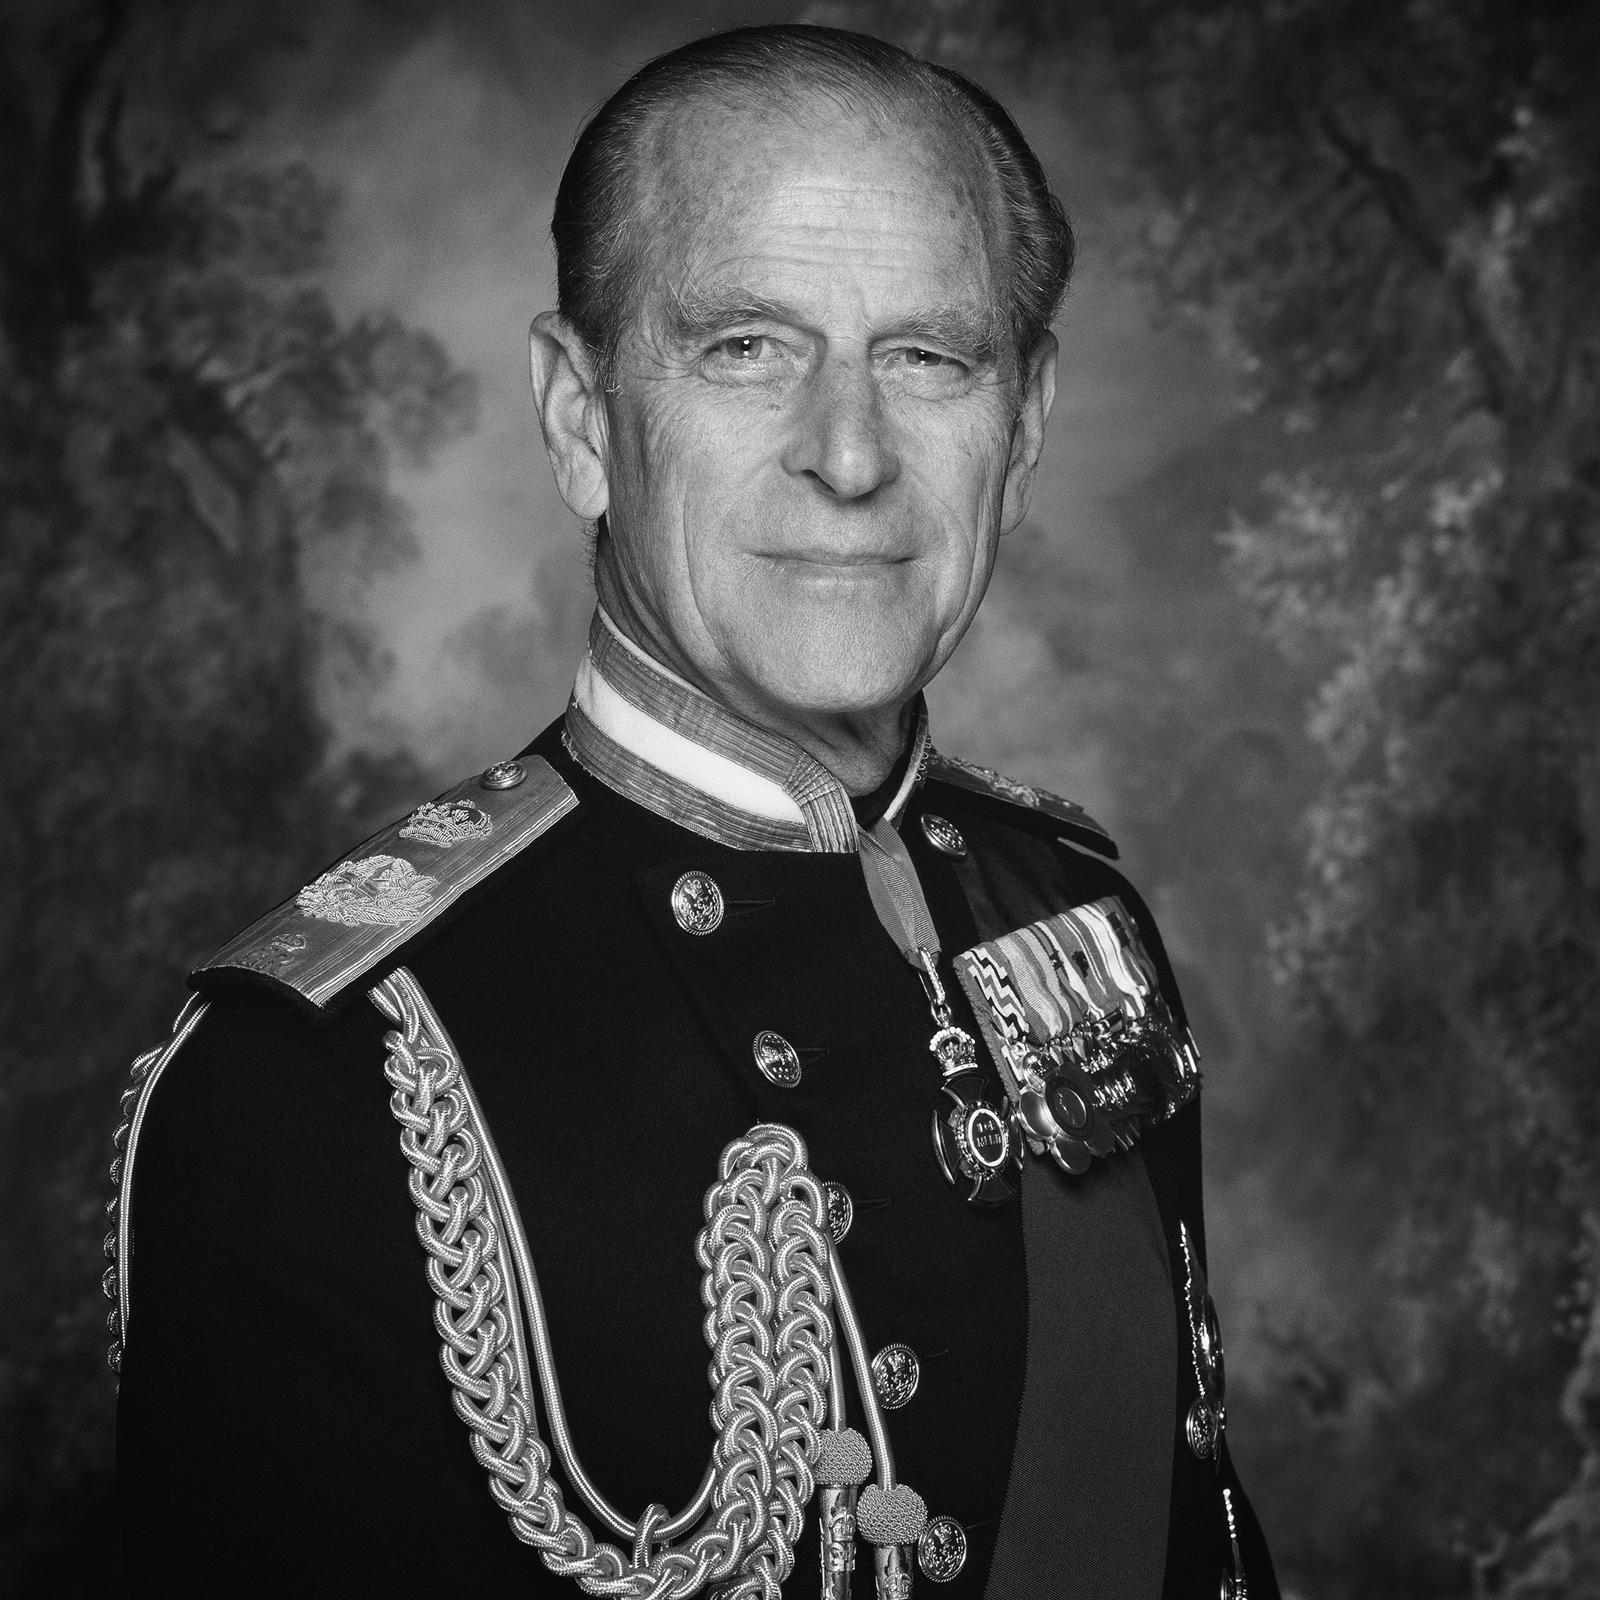 Prince Philip official portrait courtesy Buckingham Palace